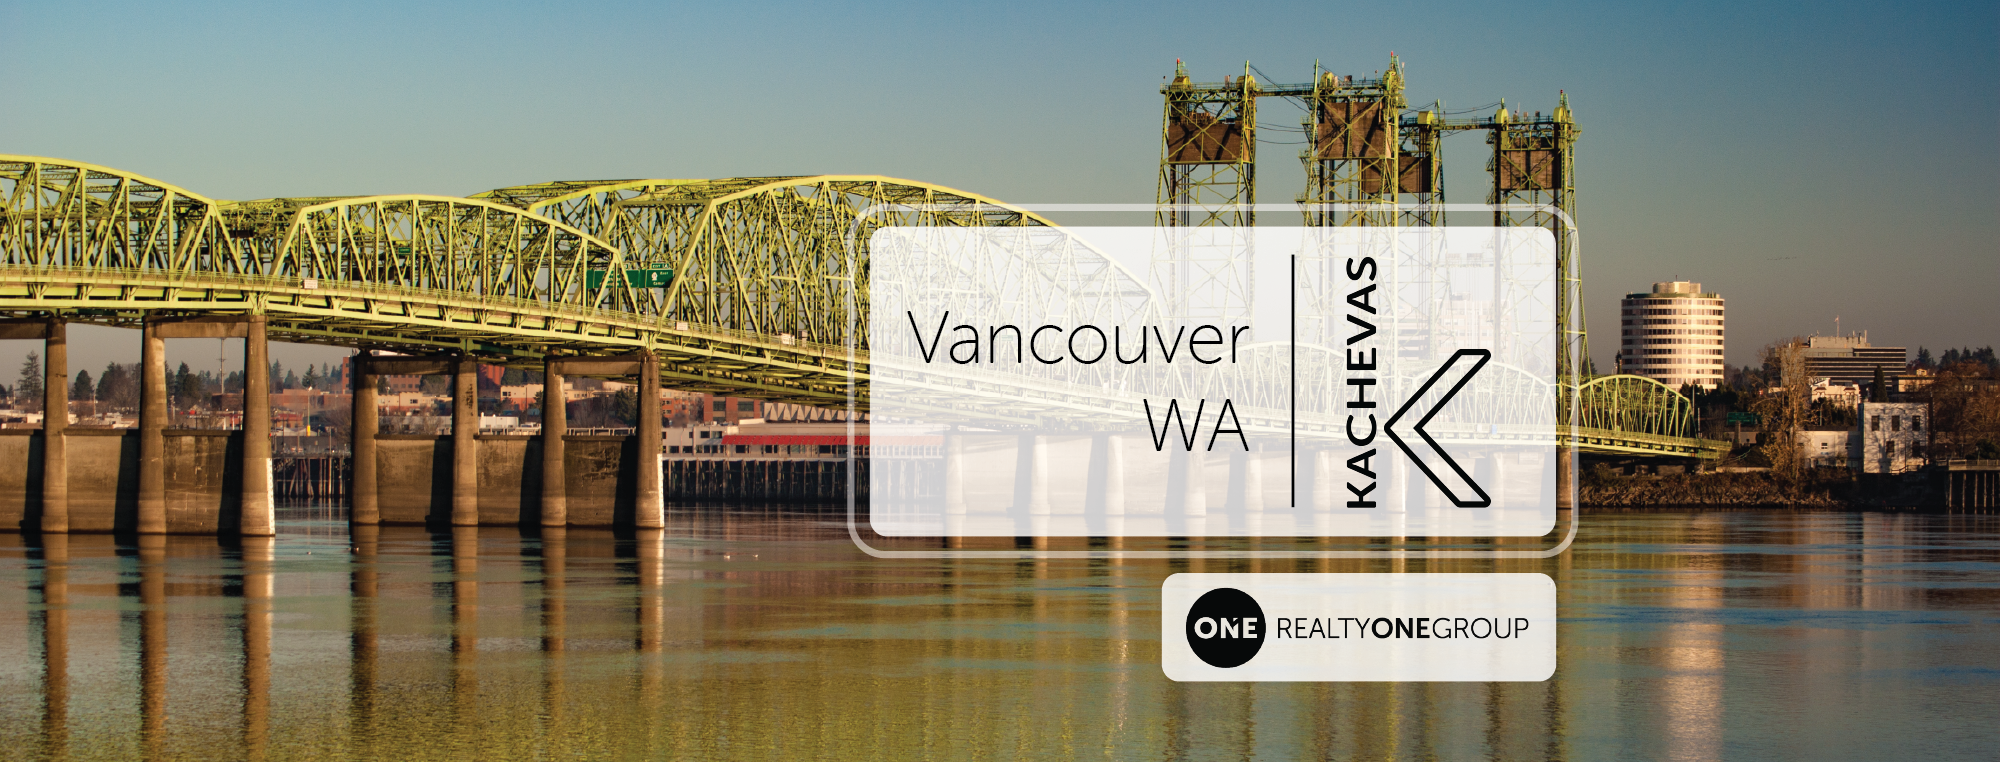 Vancouver Real Estate Agent, Vancouver Realtor